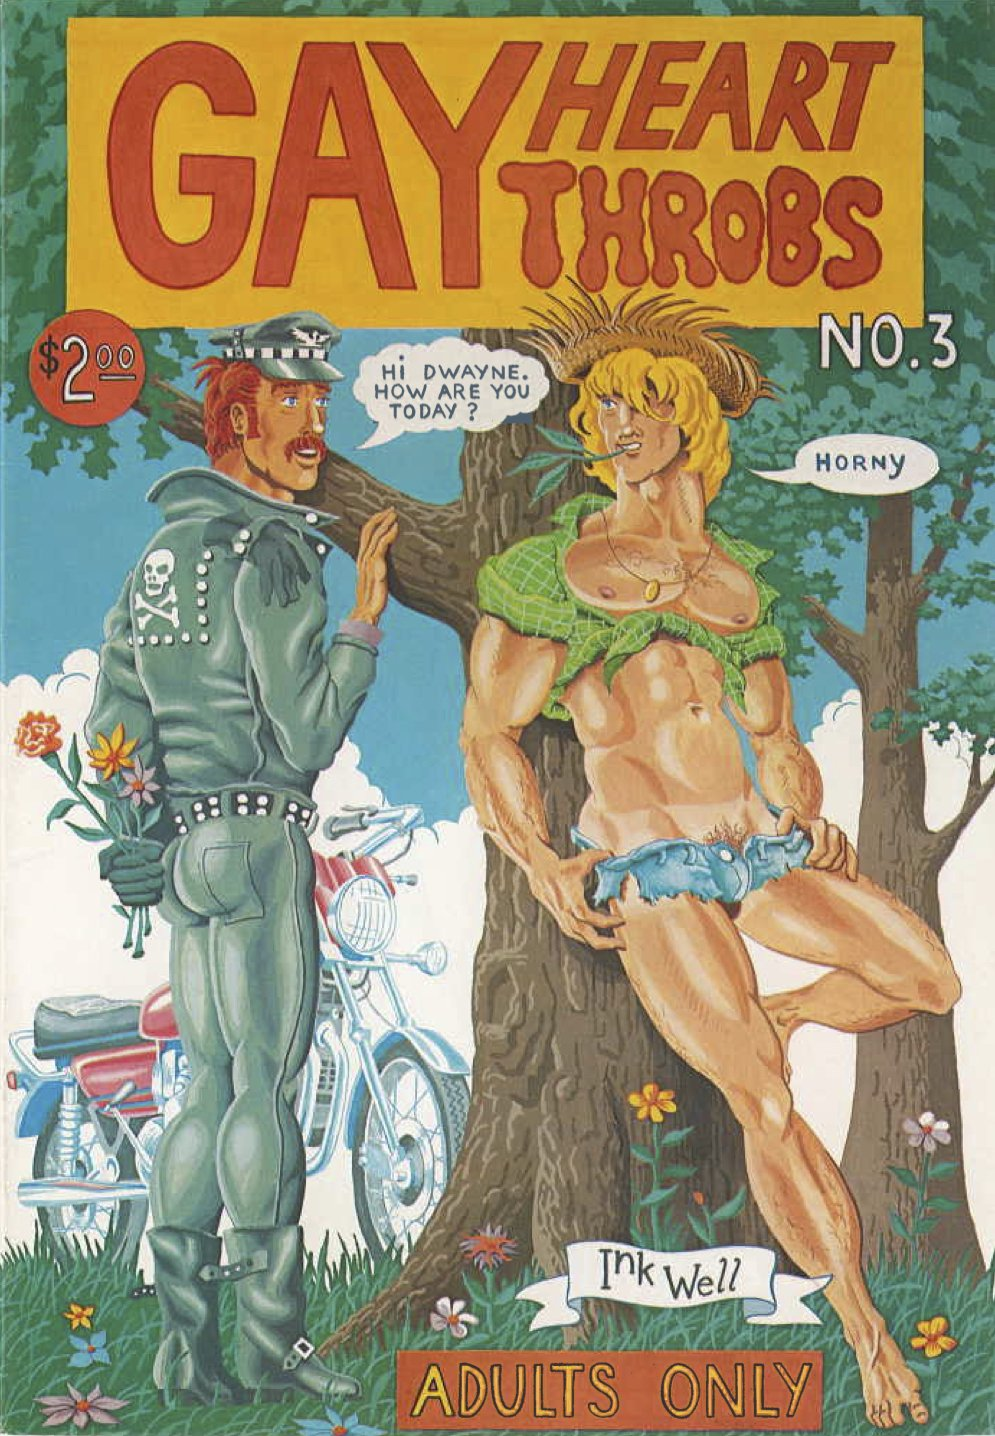 """Cover art for issue three of """"Gay Heart Throbs"""""""